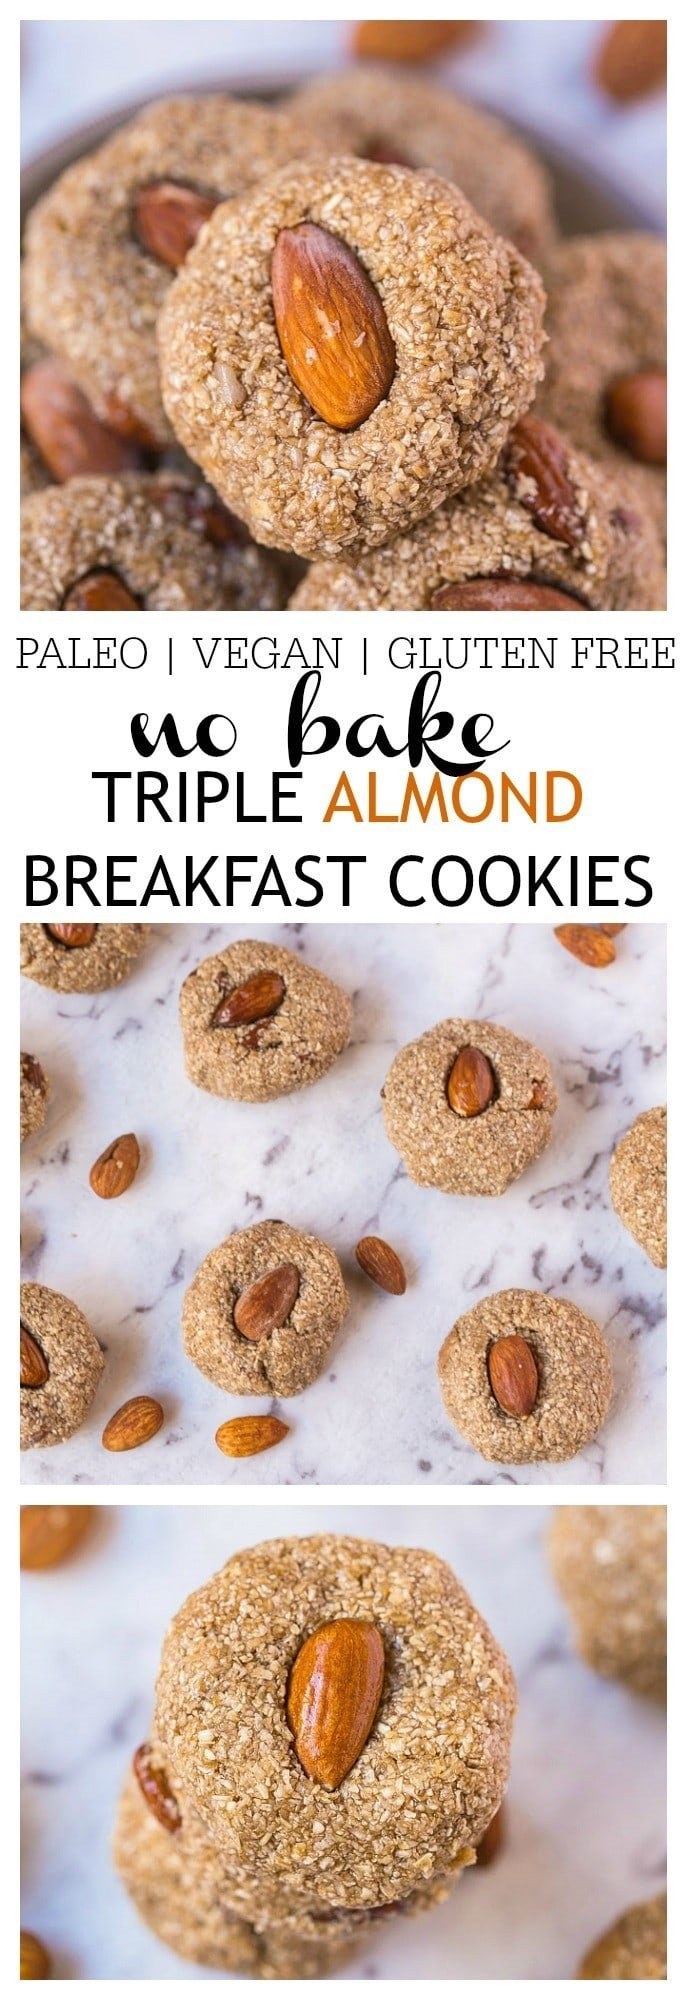 No Bake Triple Almond Breakfast Cookies- A delicious, no bake healthy cookie recipe which requires 1 bowl and 10 minutes tops to whip up! Using almonds three ways, these cookies are gluten free, paleo, vegan, dairy free and the perfect grab and go healthy breakfast! @thebigmansworld -thebigmansworld.com